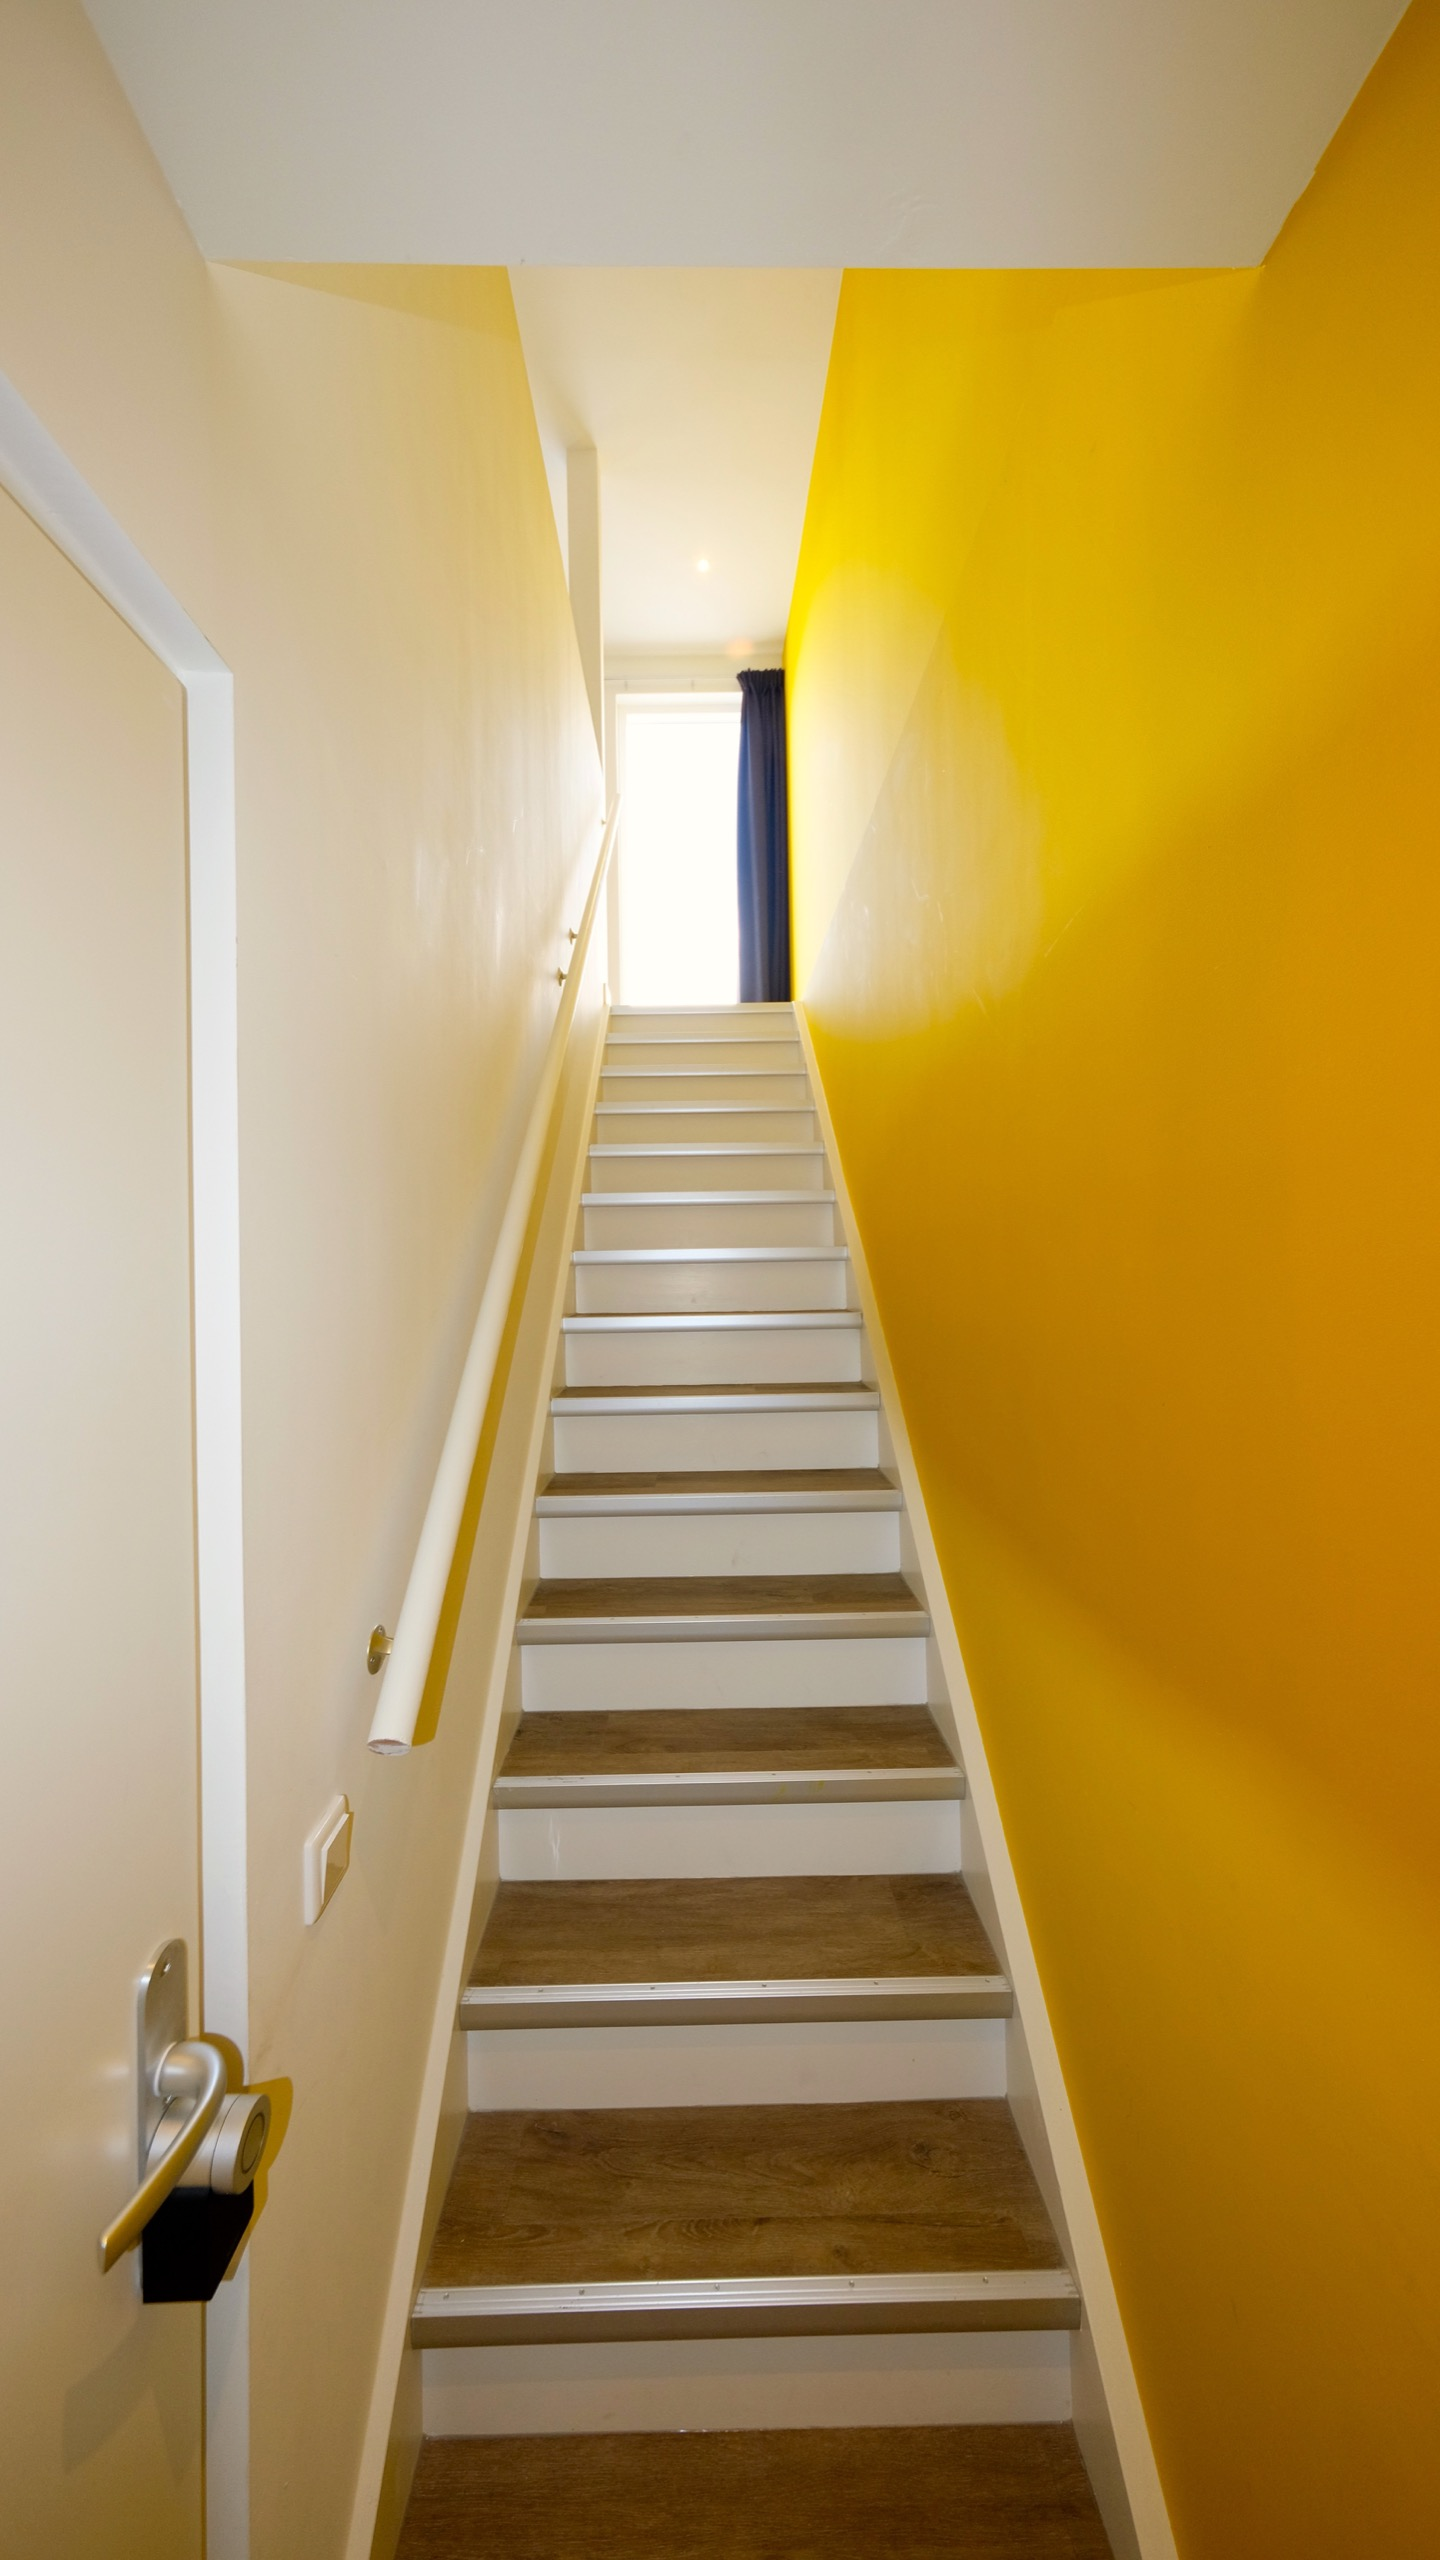 Green Stay Serviced Apartments Apartment C foto 24